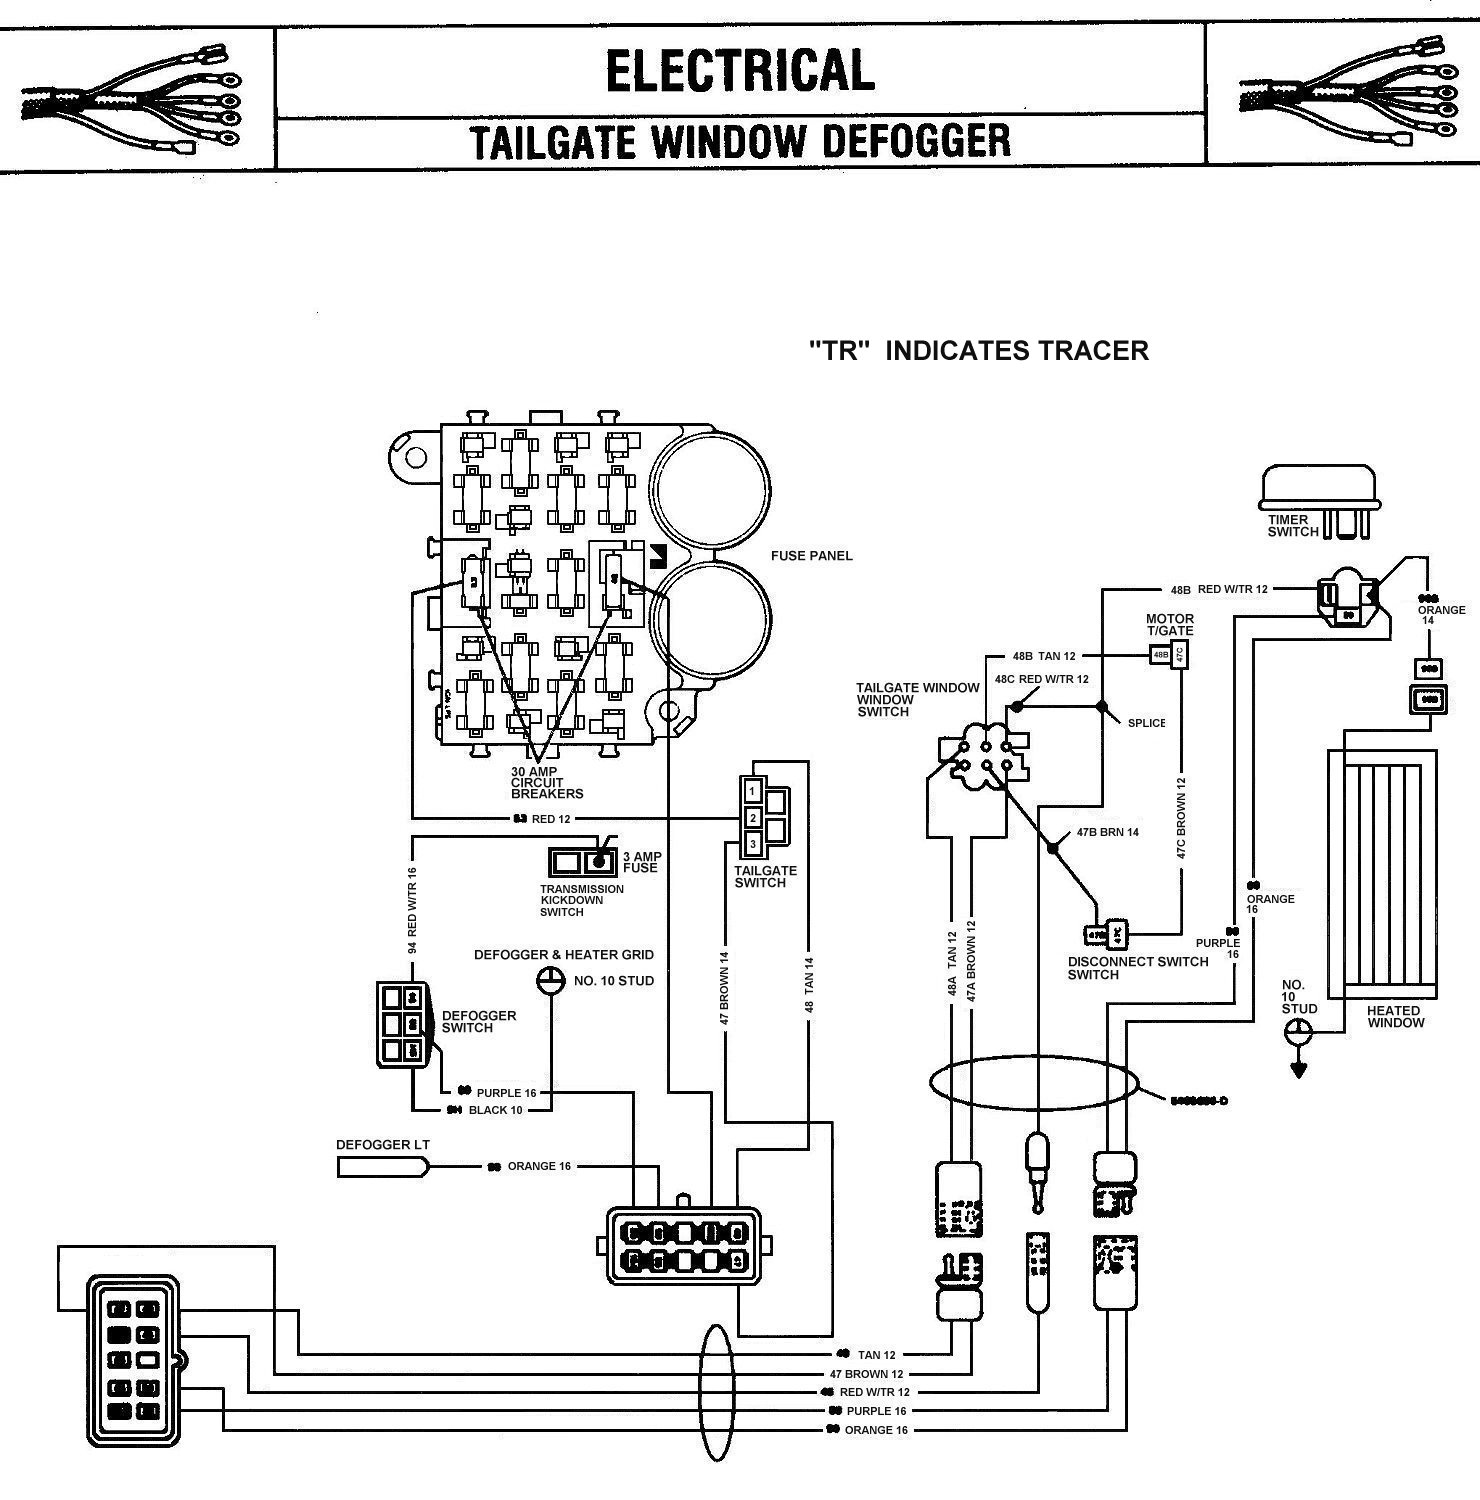 hight resolution of 1980 jeep j 20 wiring diagram wiring diagram third level rh 17 4 13 jacobwinterstein com 1977 corvette wiring diagram 1979 corvette starter wiring diagram